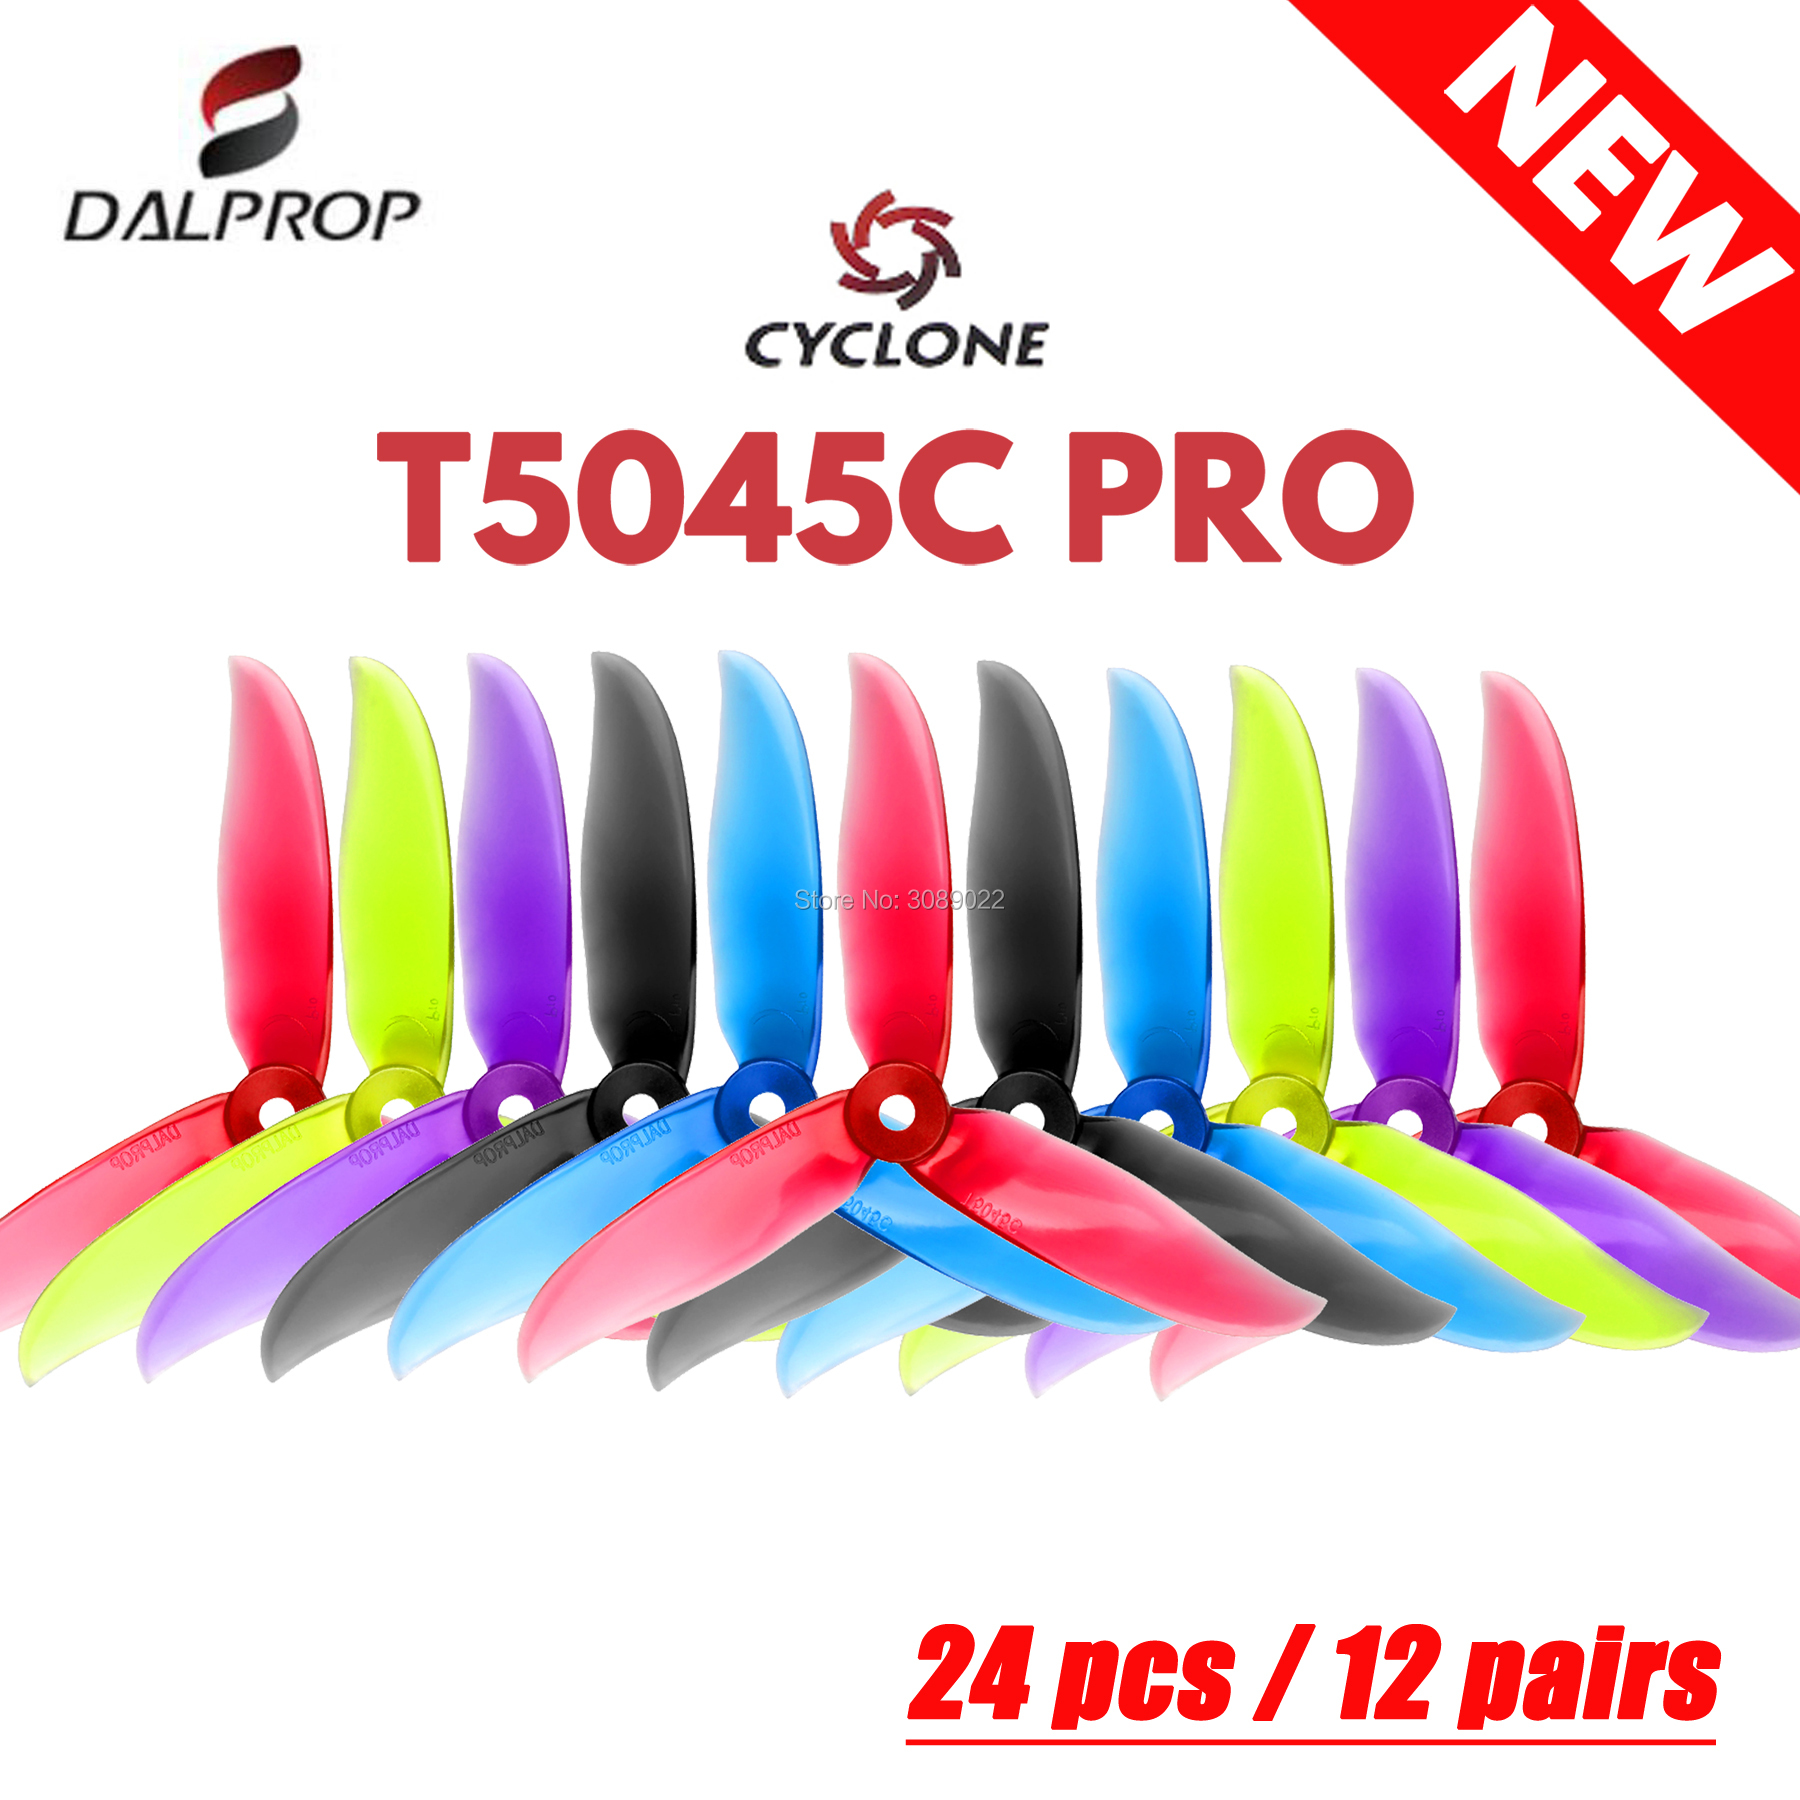 24 Pcs / 12 Pair DALPROP CYCLONE T5045C PRO 5045 3-Blade Propeller For FPV Freestyle Drone Quadcopter Updated Version Prop(China)